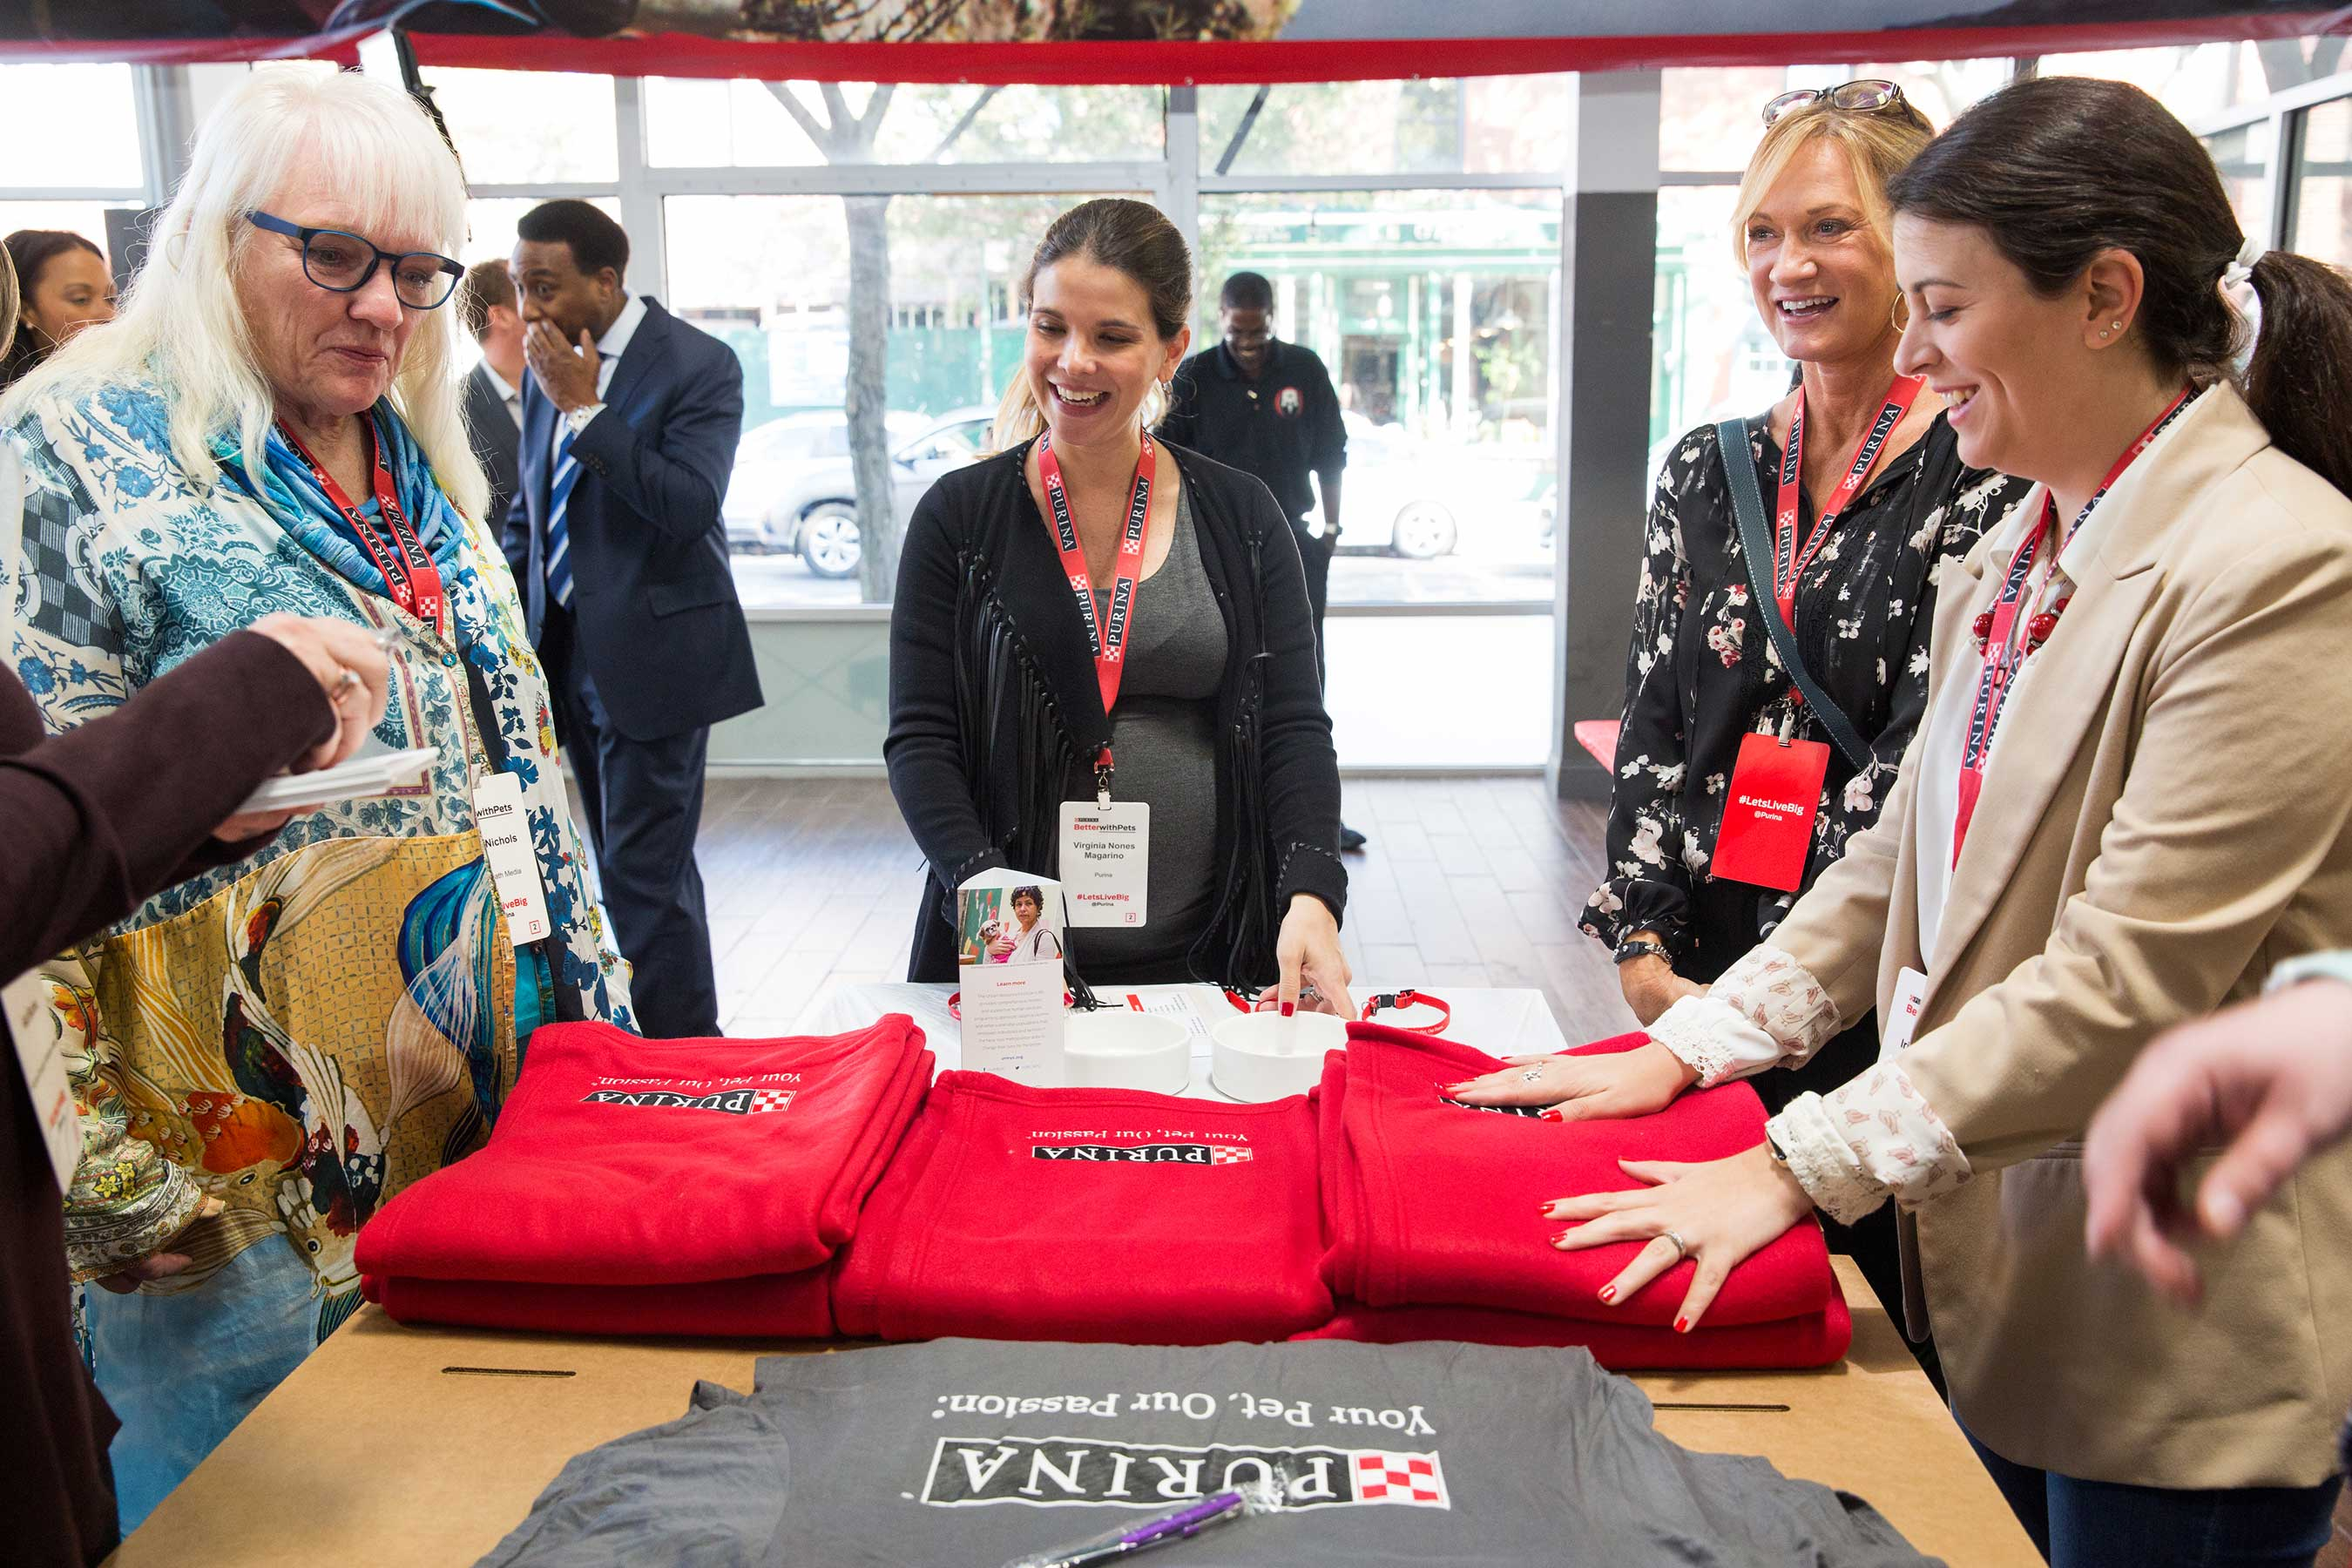 Attendees at Purina's Better with Pets Summit created 'welcome kits' for domestic violence survivors who are staying at the new Urban Resource Institute's pet-friendly shelter in New York City.